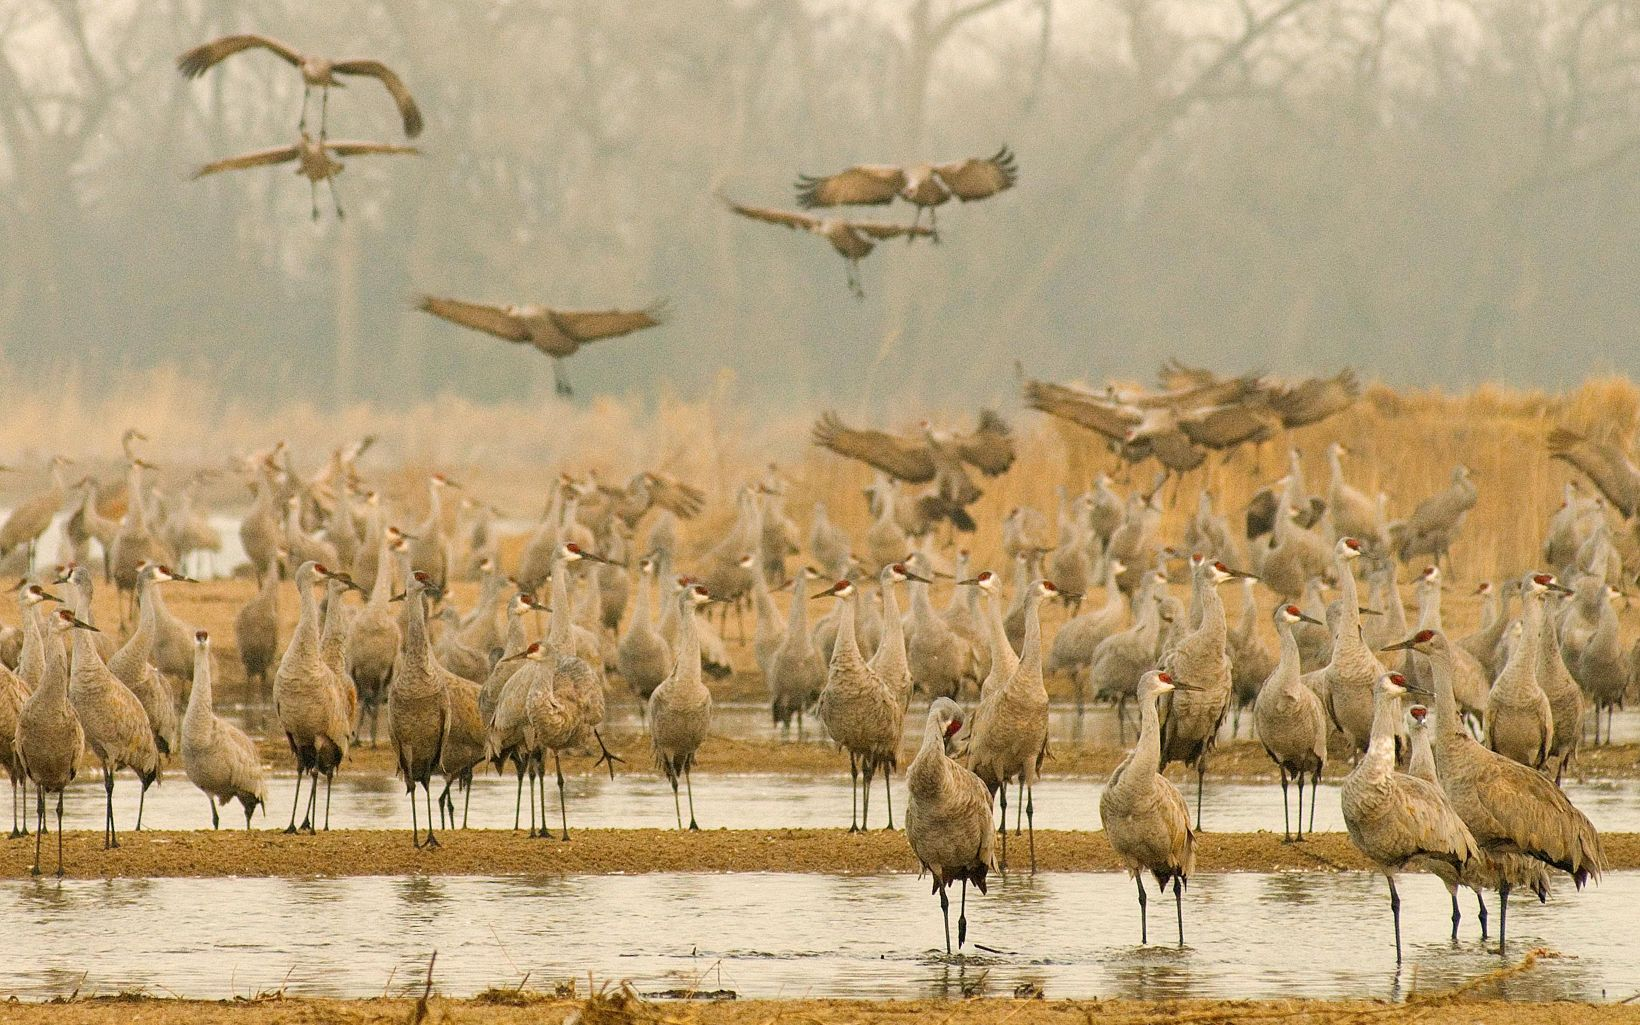 Dozens of sandhill cranes gather on the shores of the Platte River.